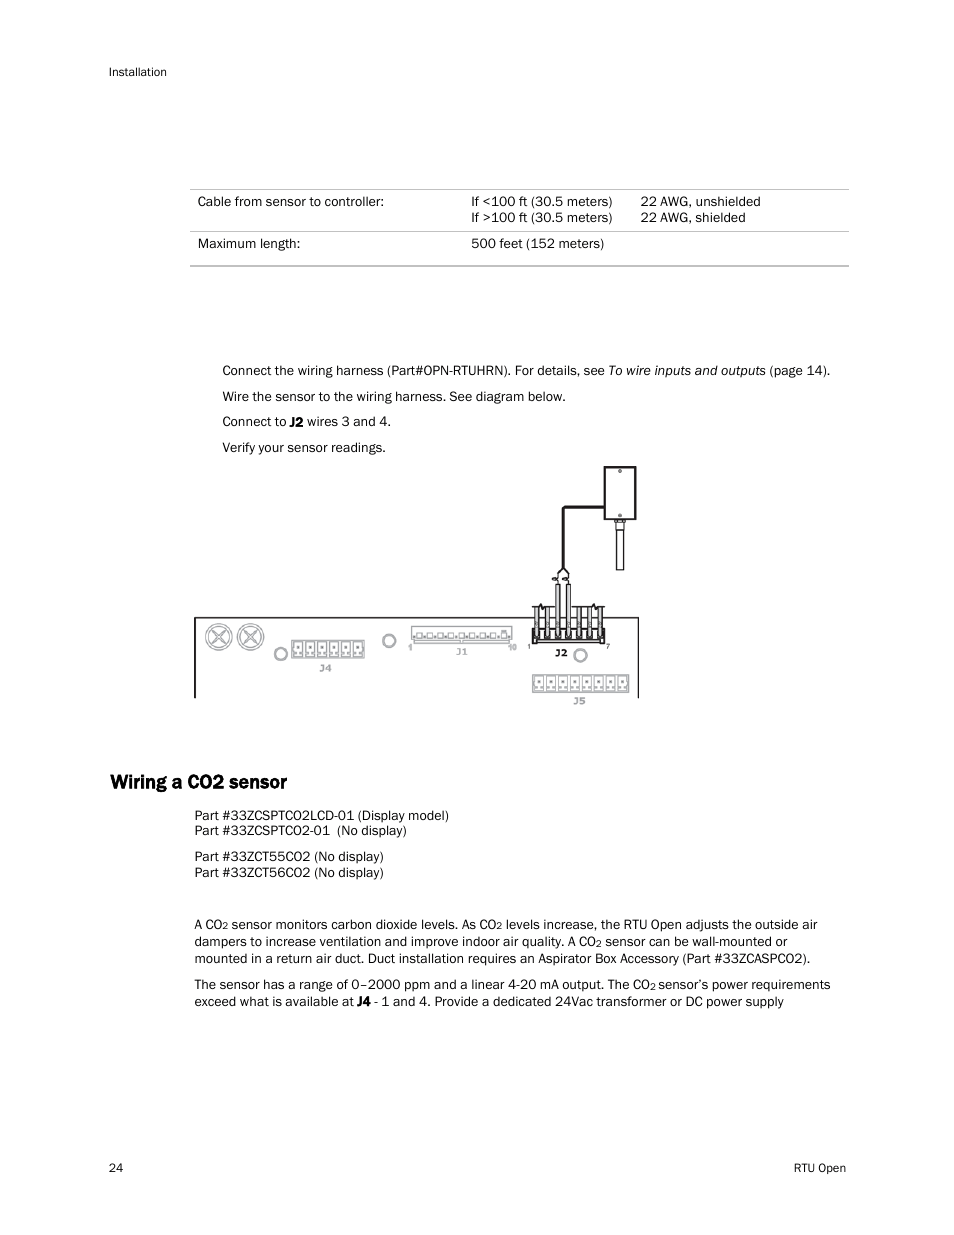 medium resolution of wiring specifications to wire an oat sensor to the controller wiring a co2 sensor carrier rtu open 11 808 427 01 user manual page 30 88